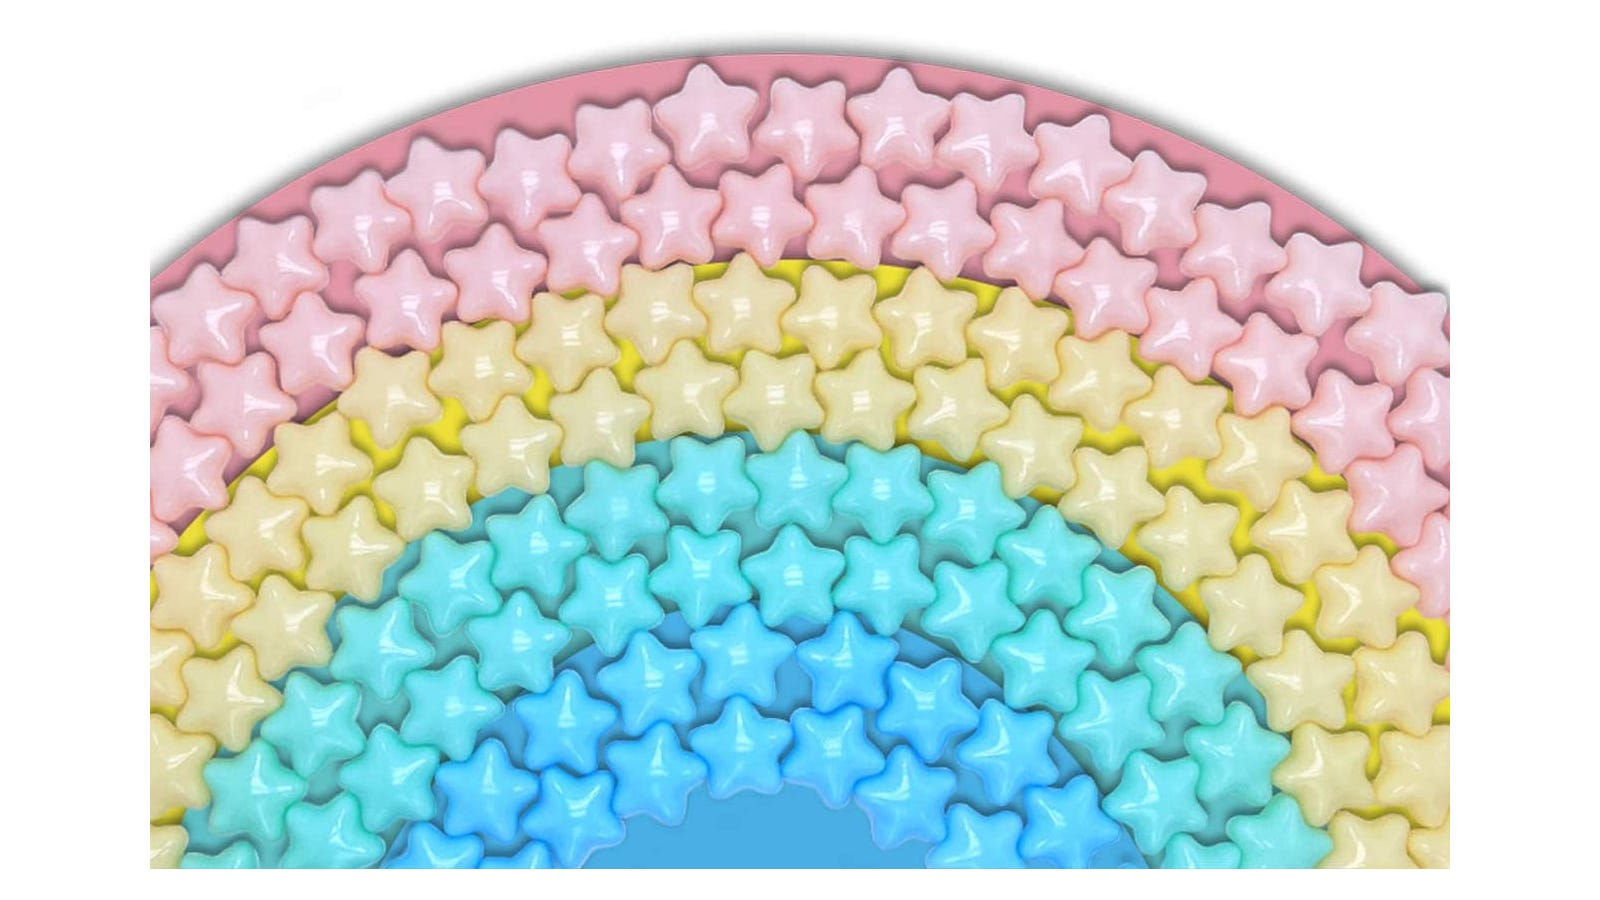 pile of pink, yellow, and blue plastic star-shaped balls